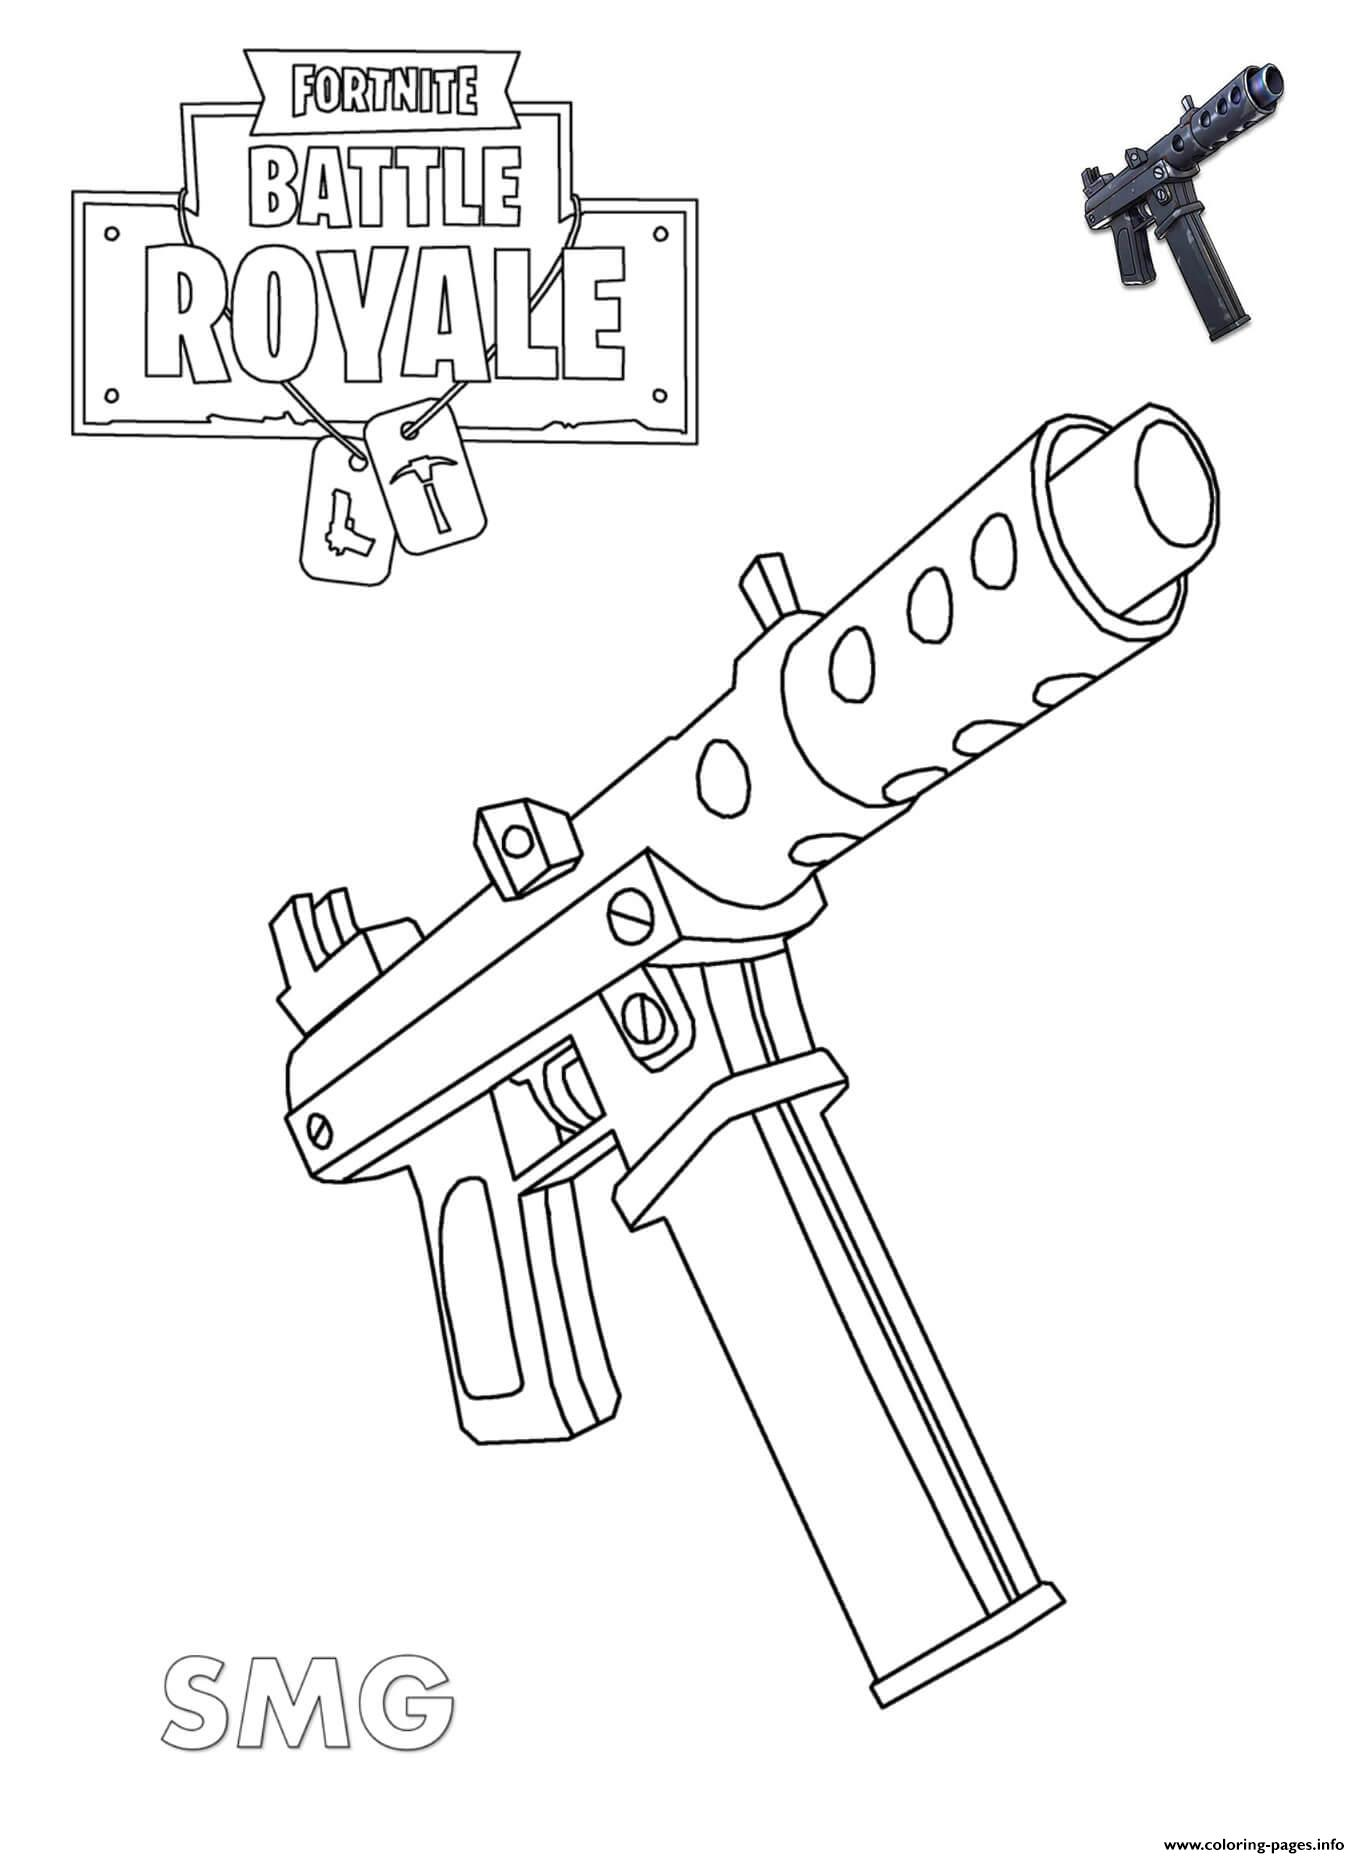 free printable fortnite coloring pages 34 free printable fortnite coloring pages pages coloring printable free fortnite